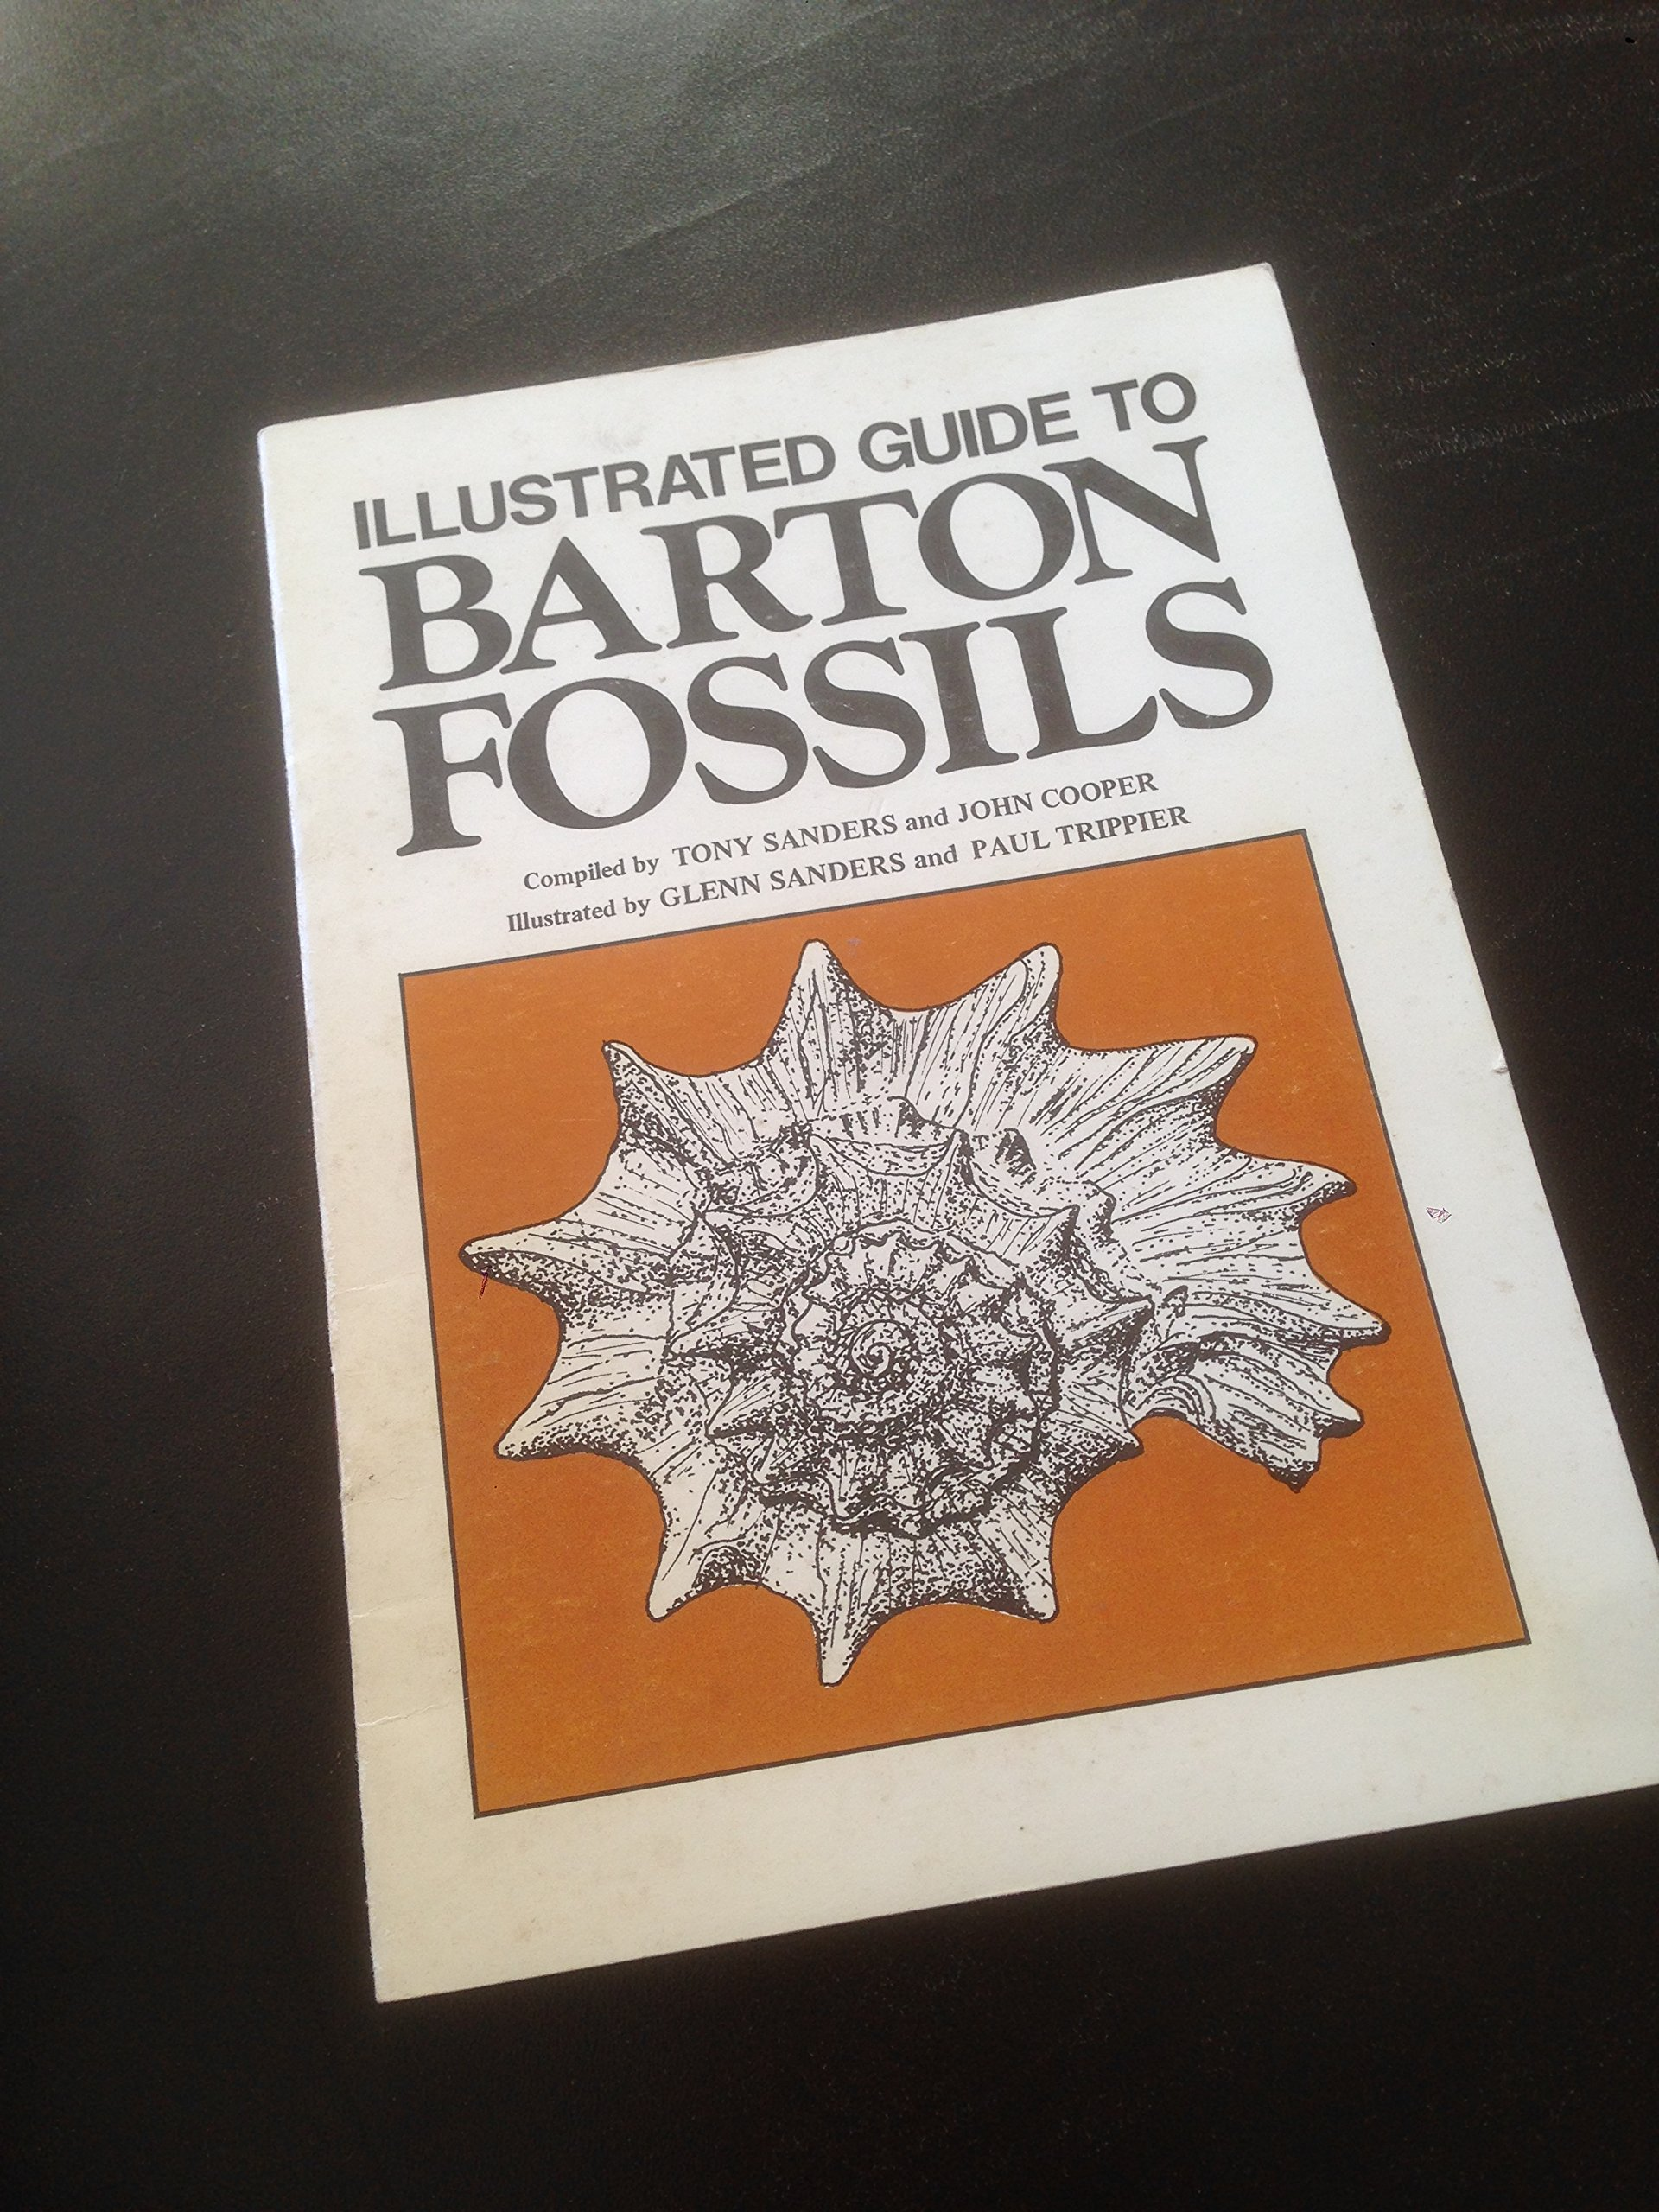 Illustrated Guide To Barton Fossils Amazoncouk Tony Sanders John Cooper Paul Trippier Glenn Books